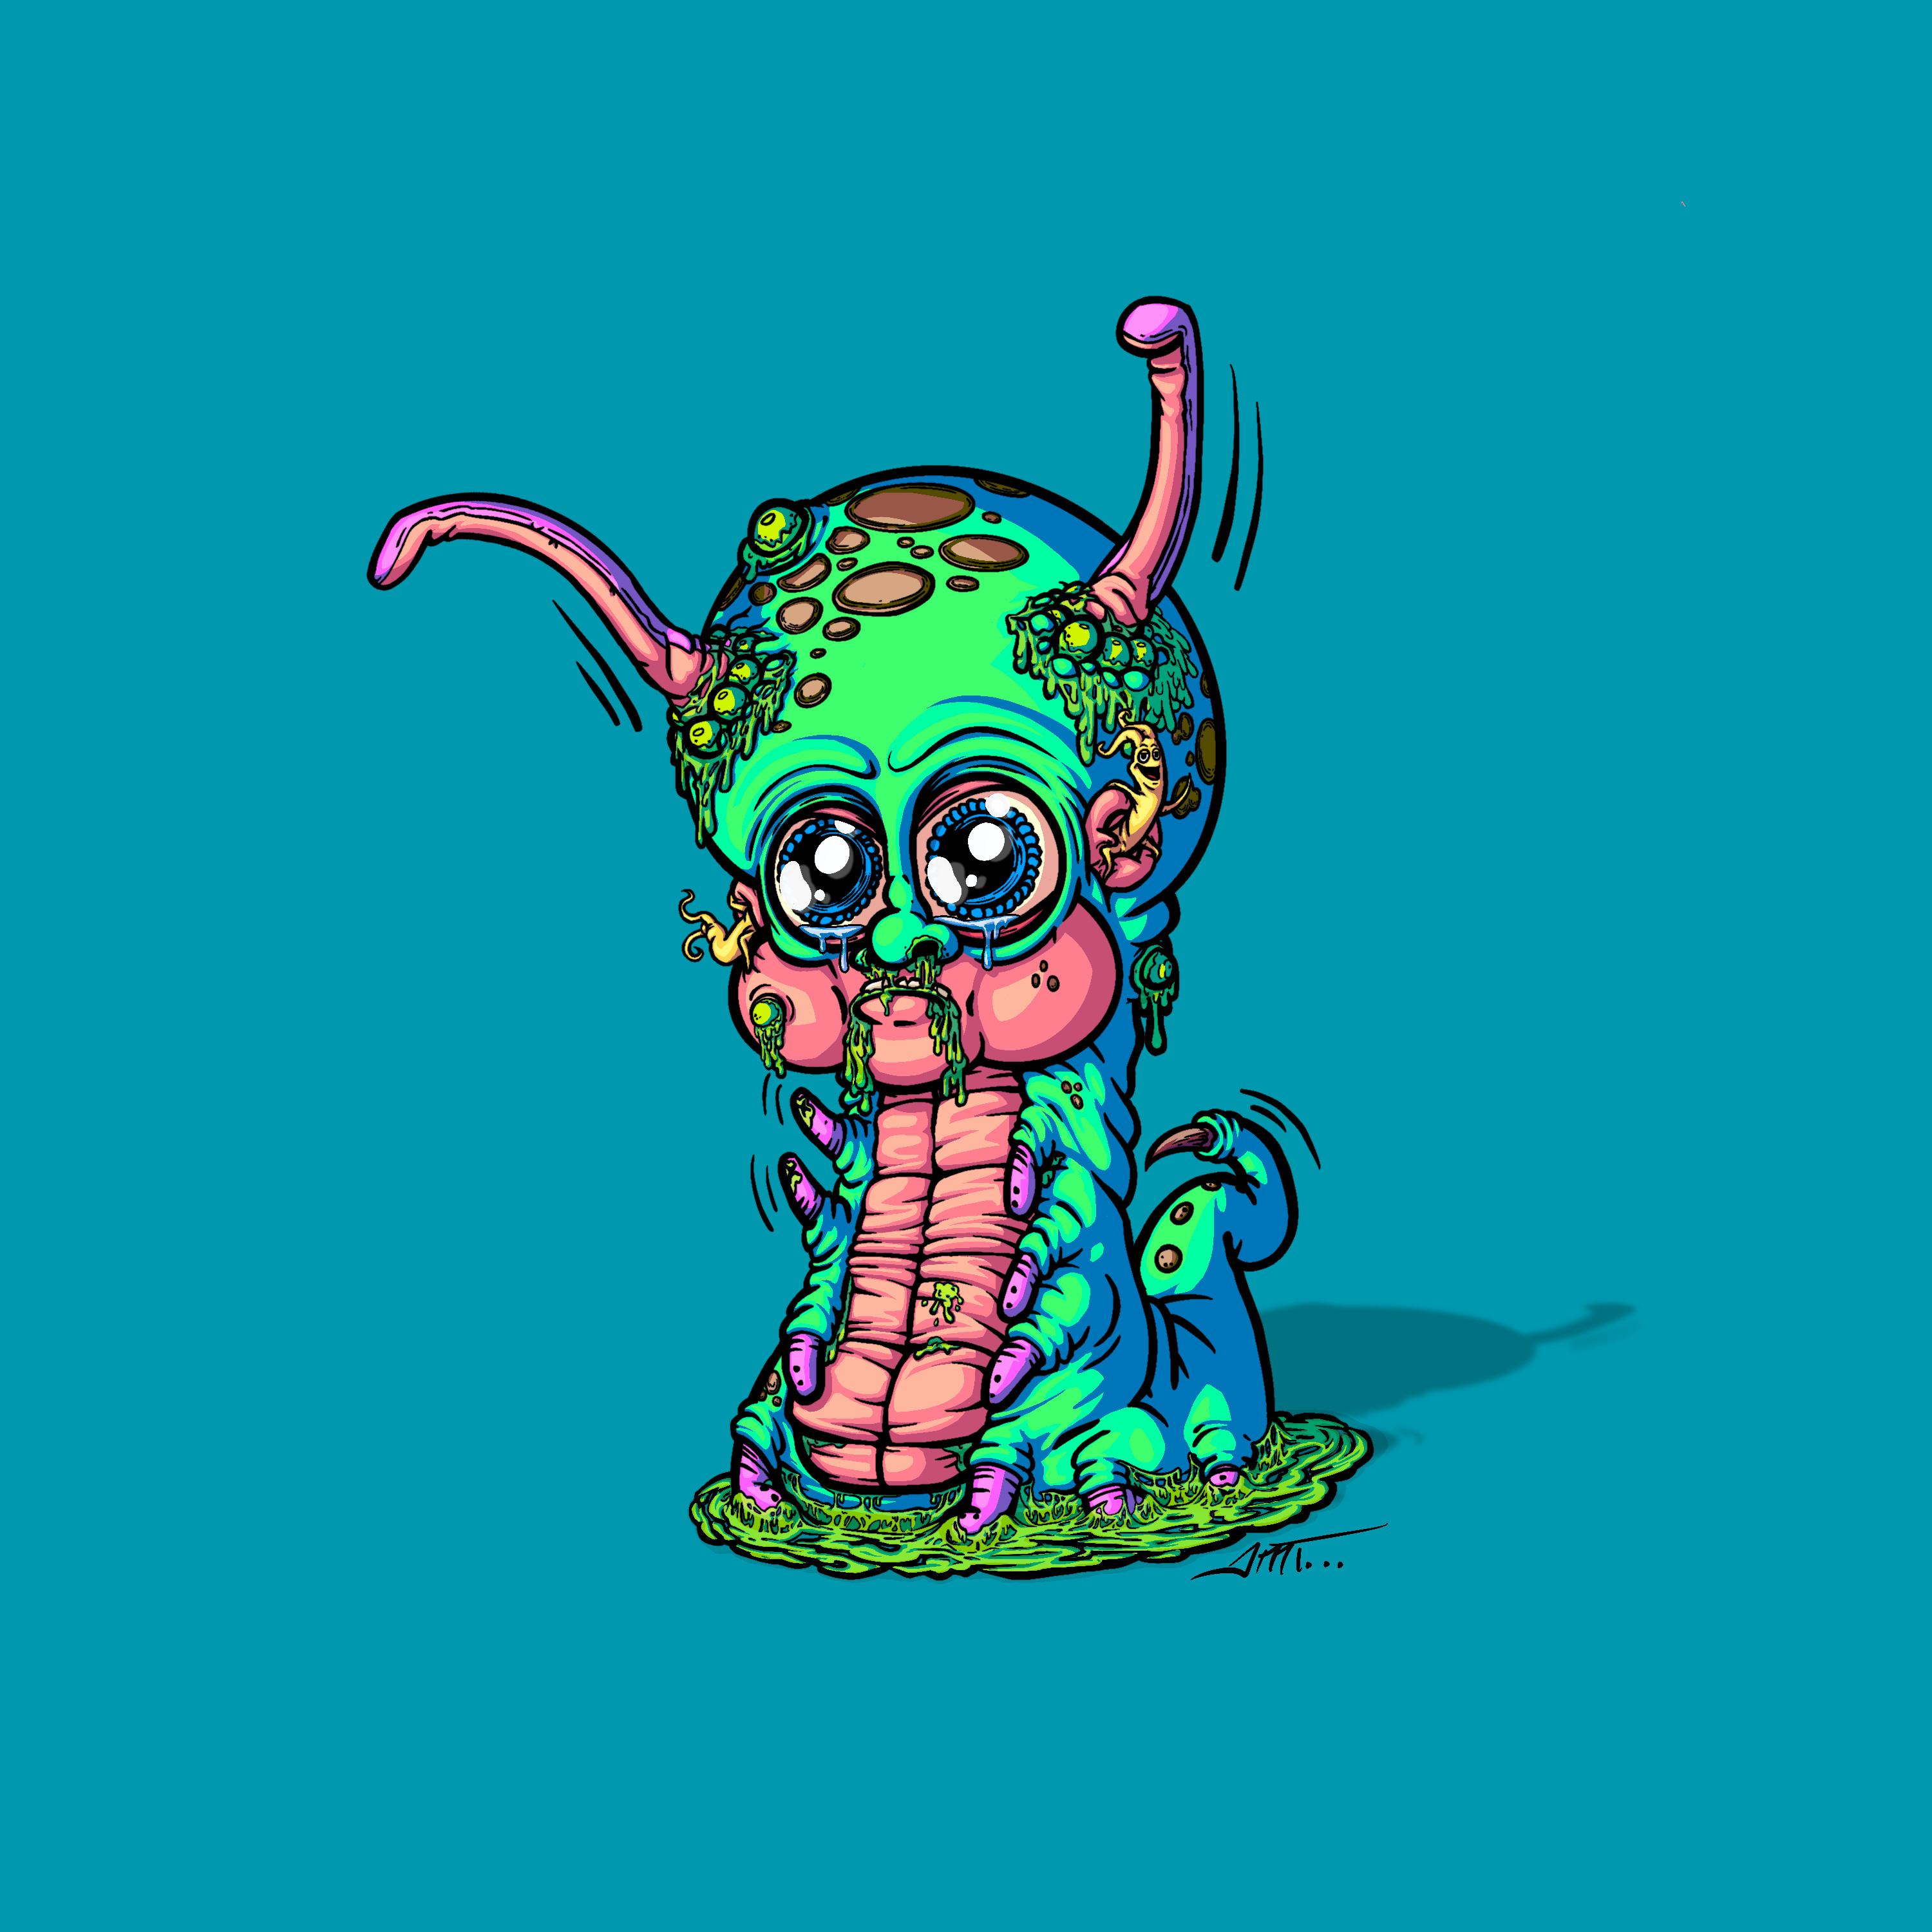 Caterbebe'n'Squirm: Lil gross caterbebe and his wormy parasite friend.